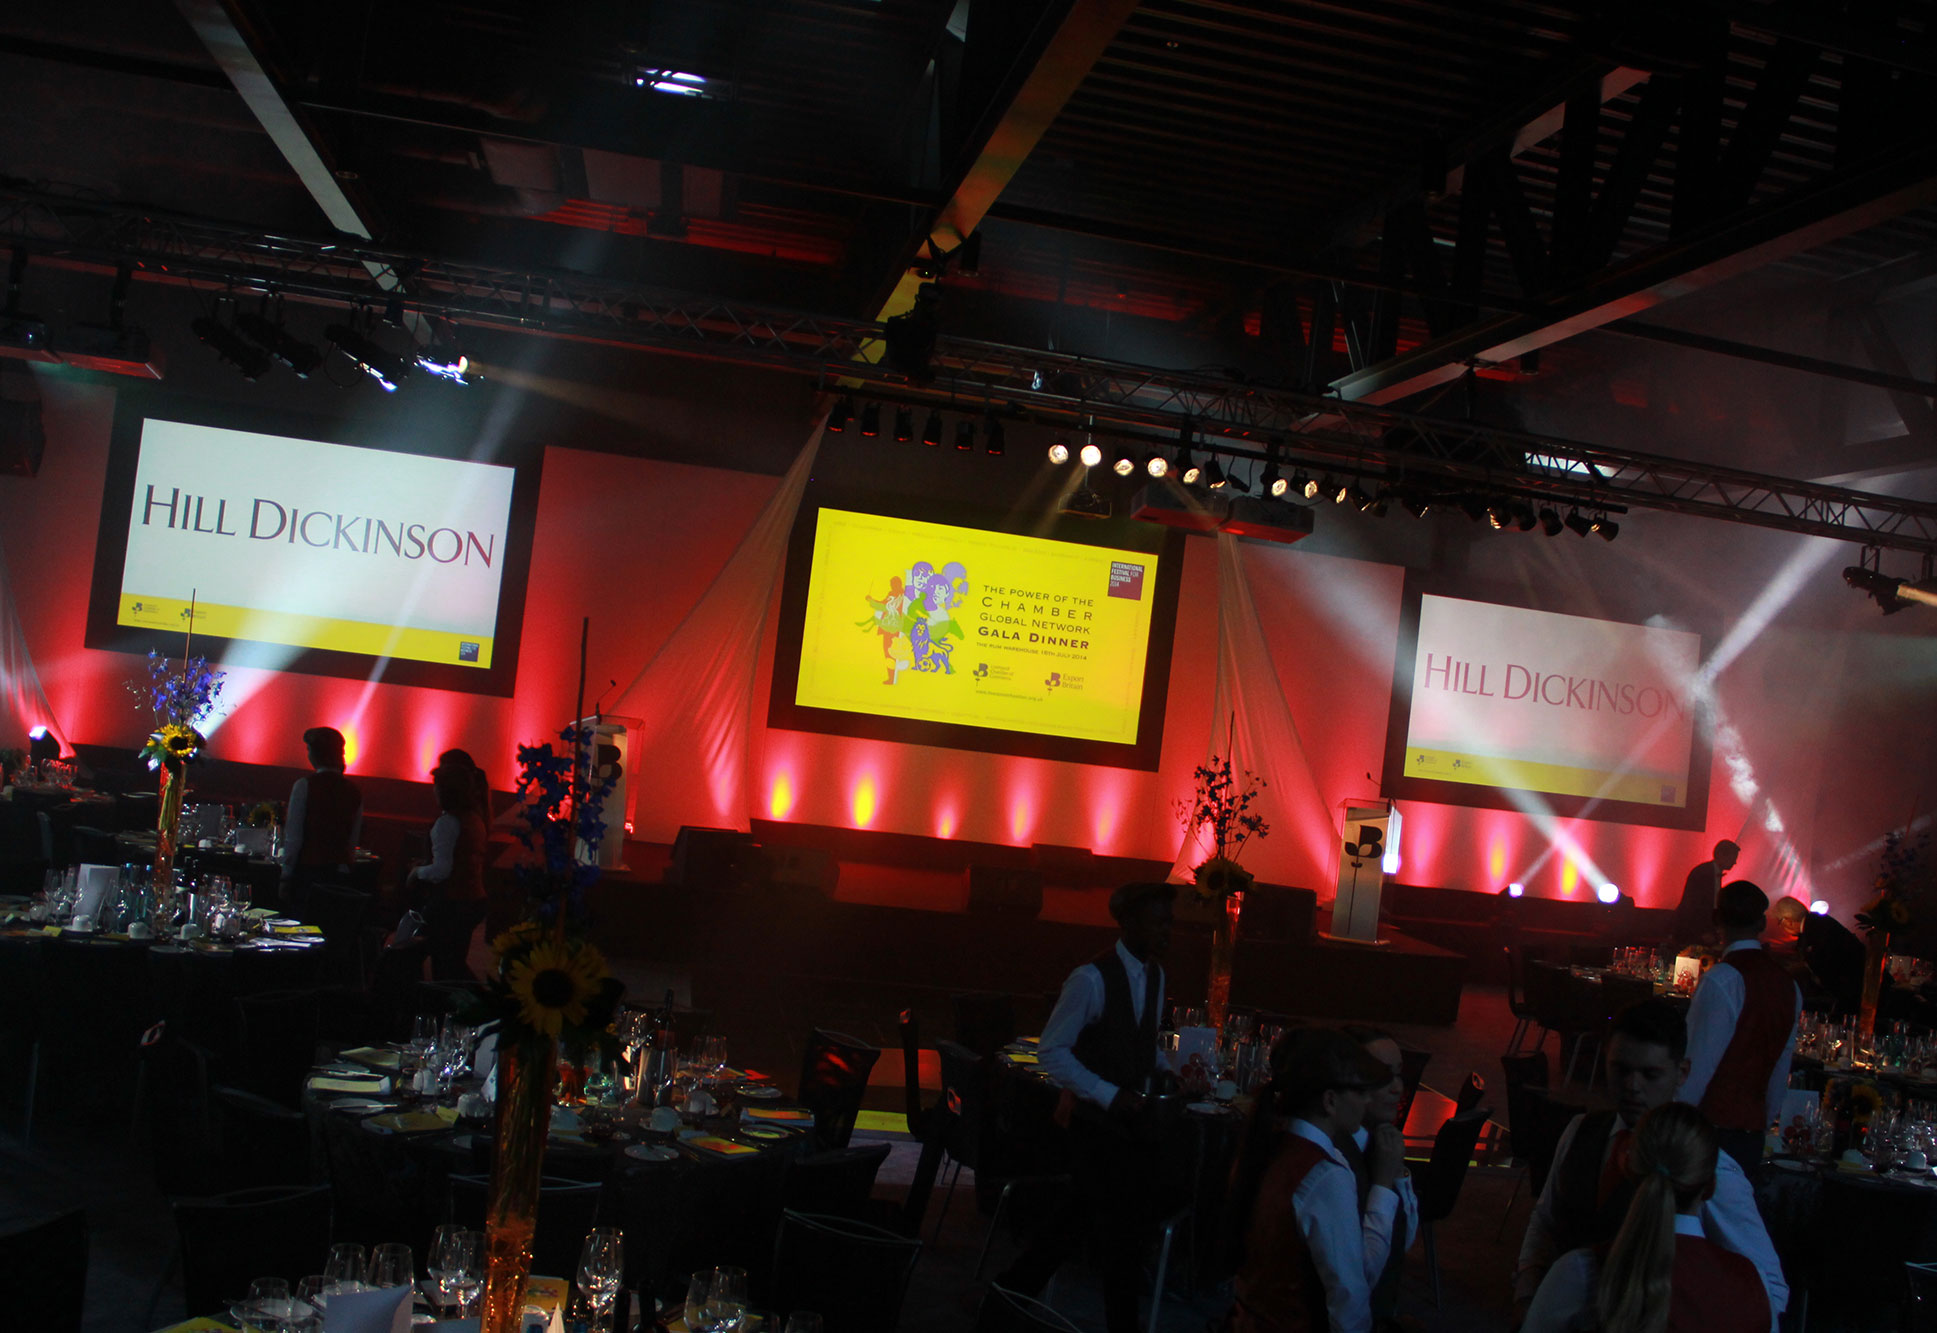 Corporate Event Production, Audio Visual Hire & Staging at Rum Warehouse Liverpool